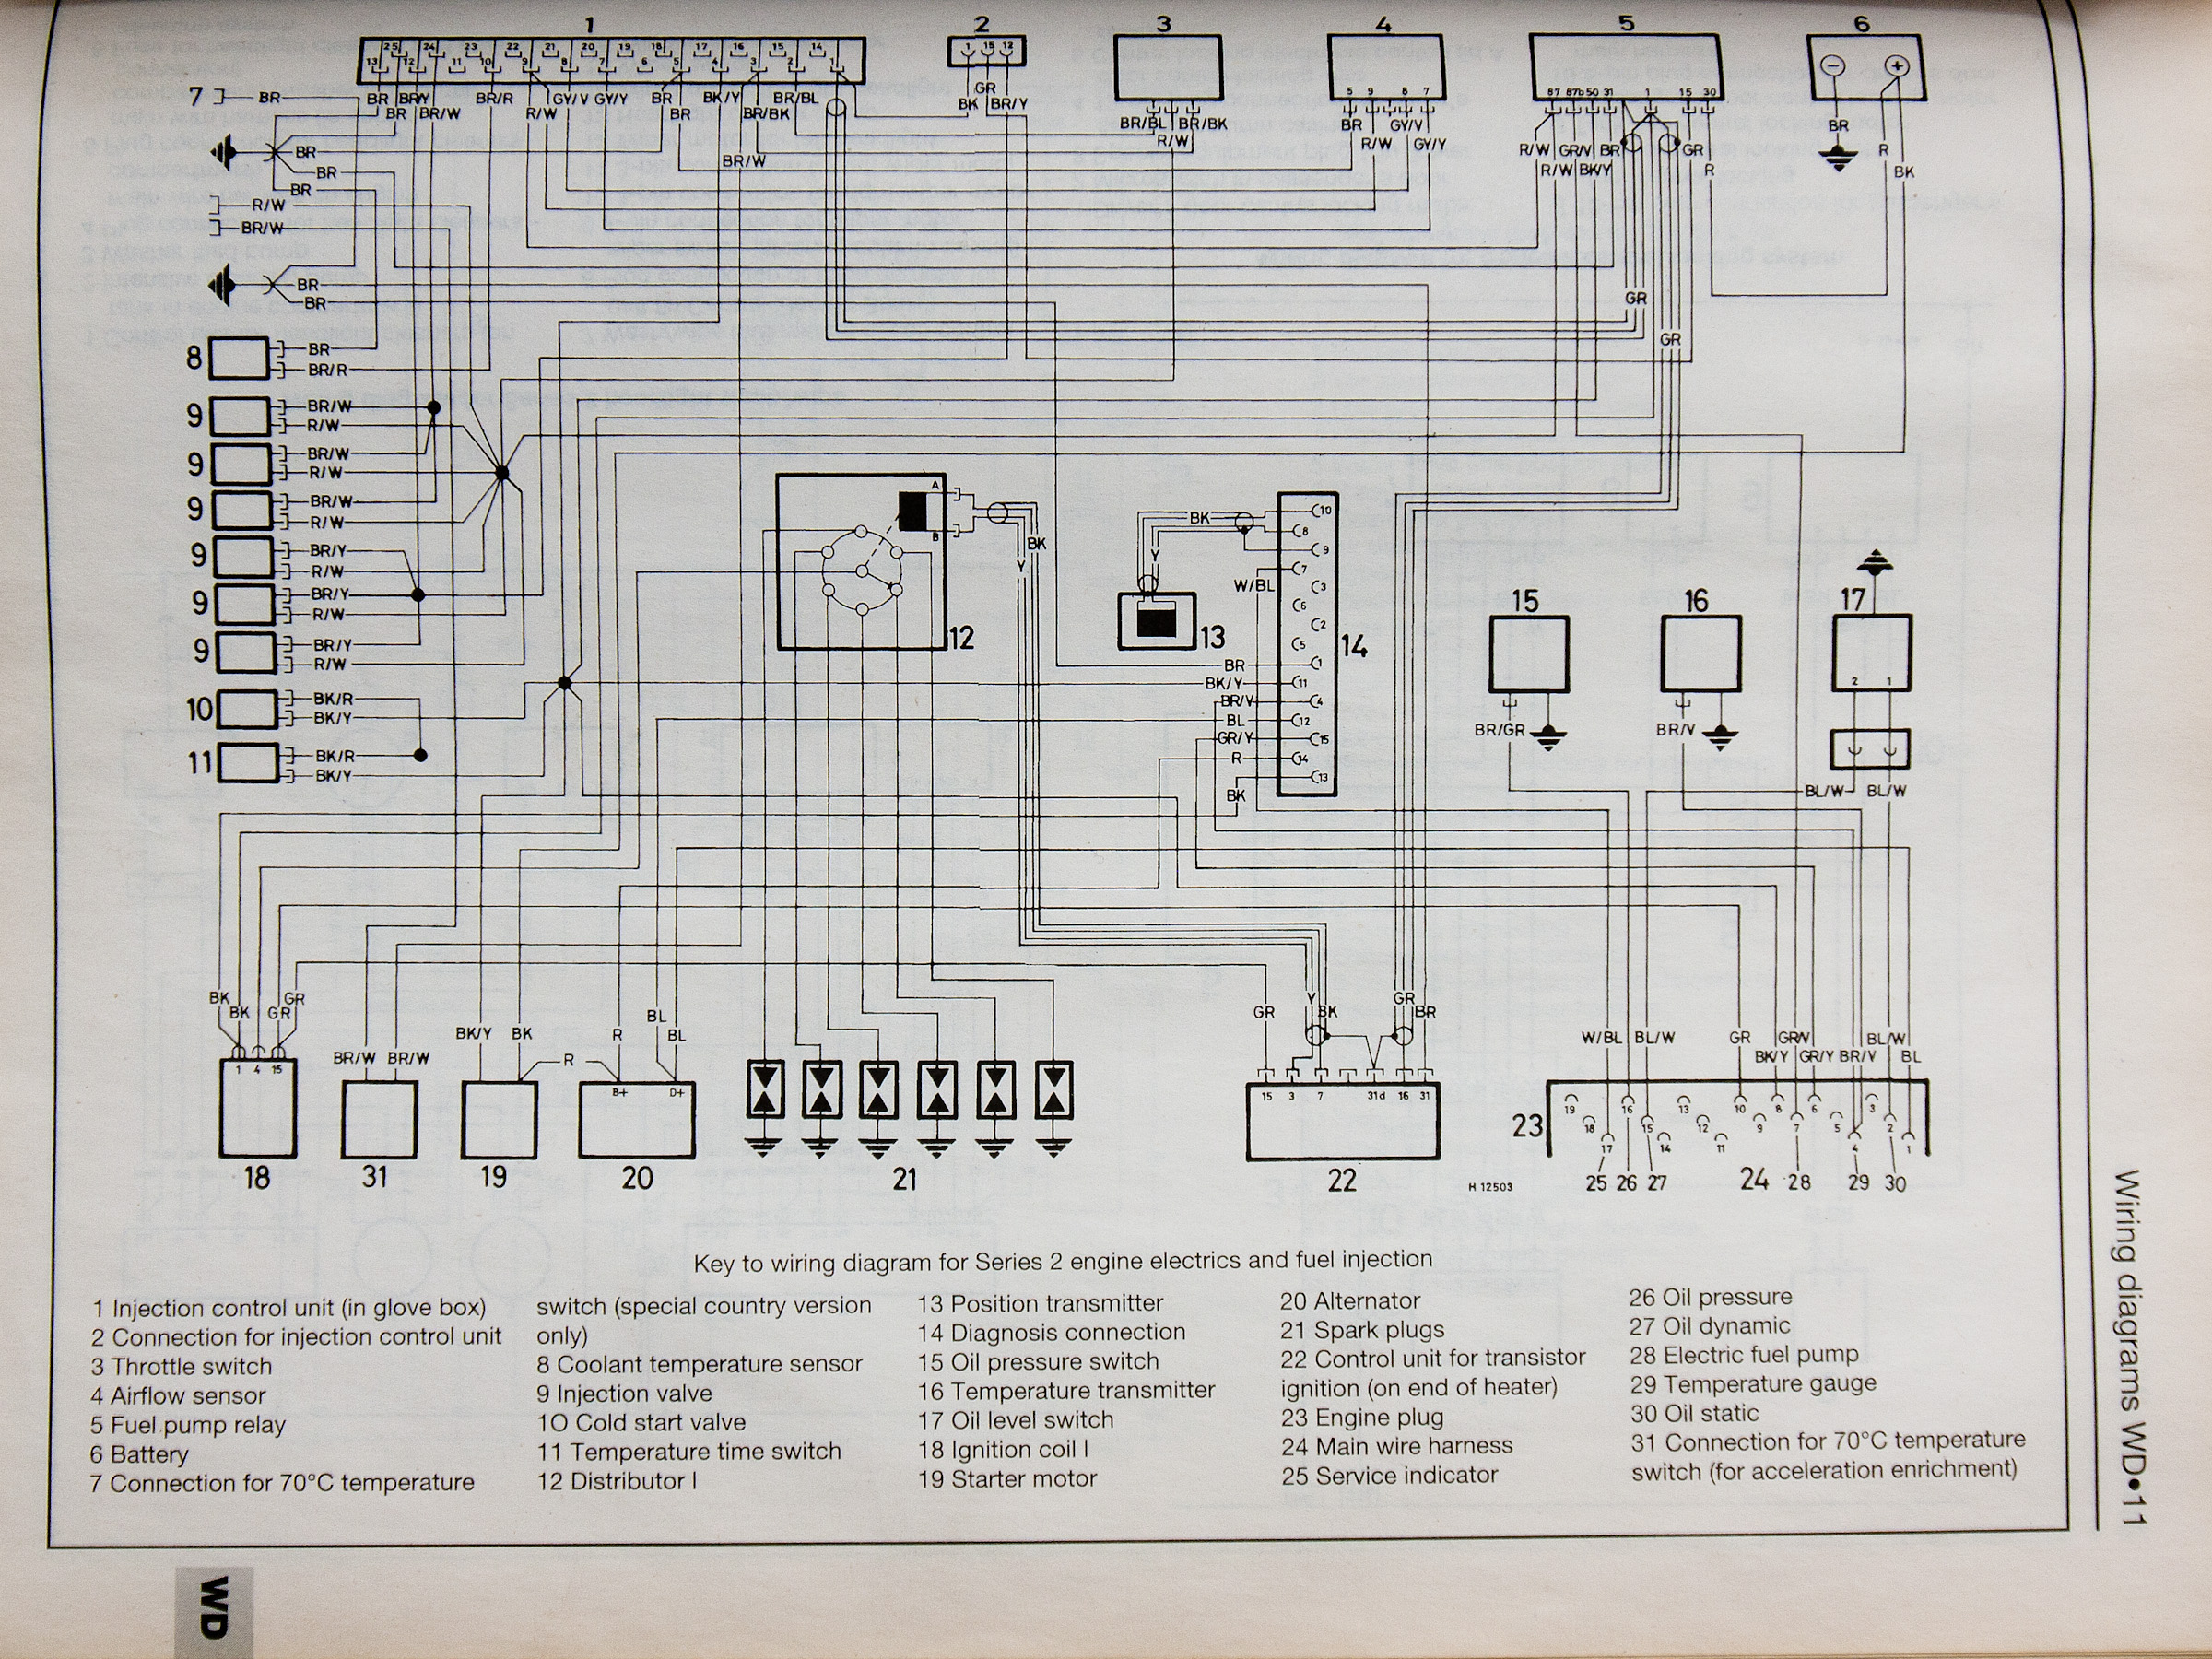 e30_ljetronic_001 e30_ljetronic_001 jpg 1982 bmw e21 jetronic wiring diagram at panicattacktreatment.co